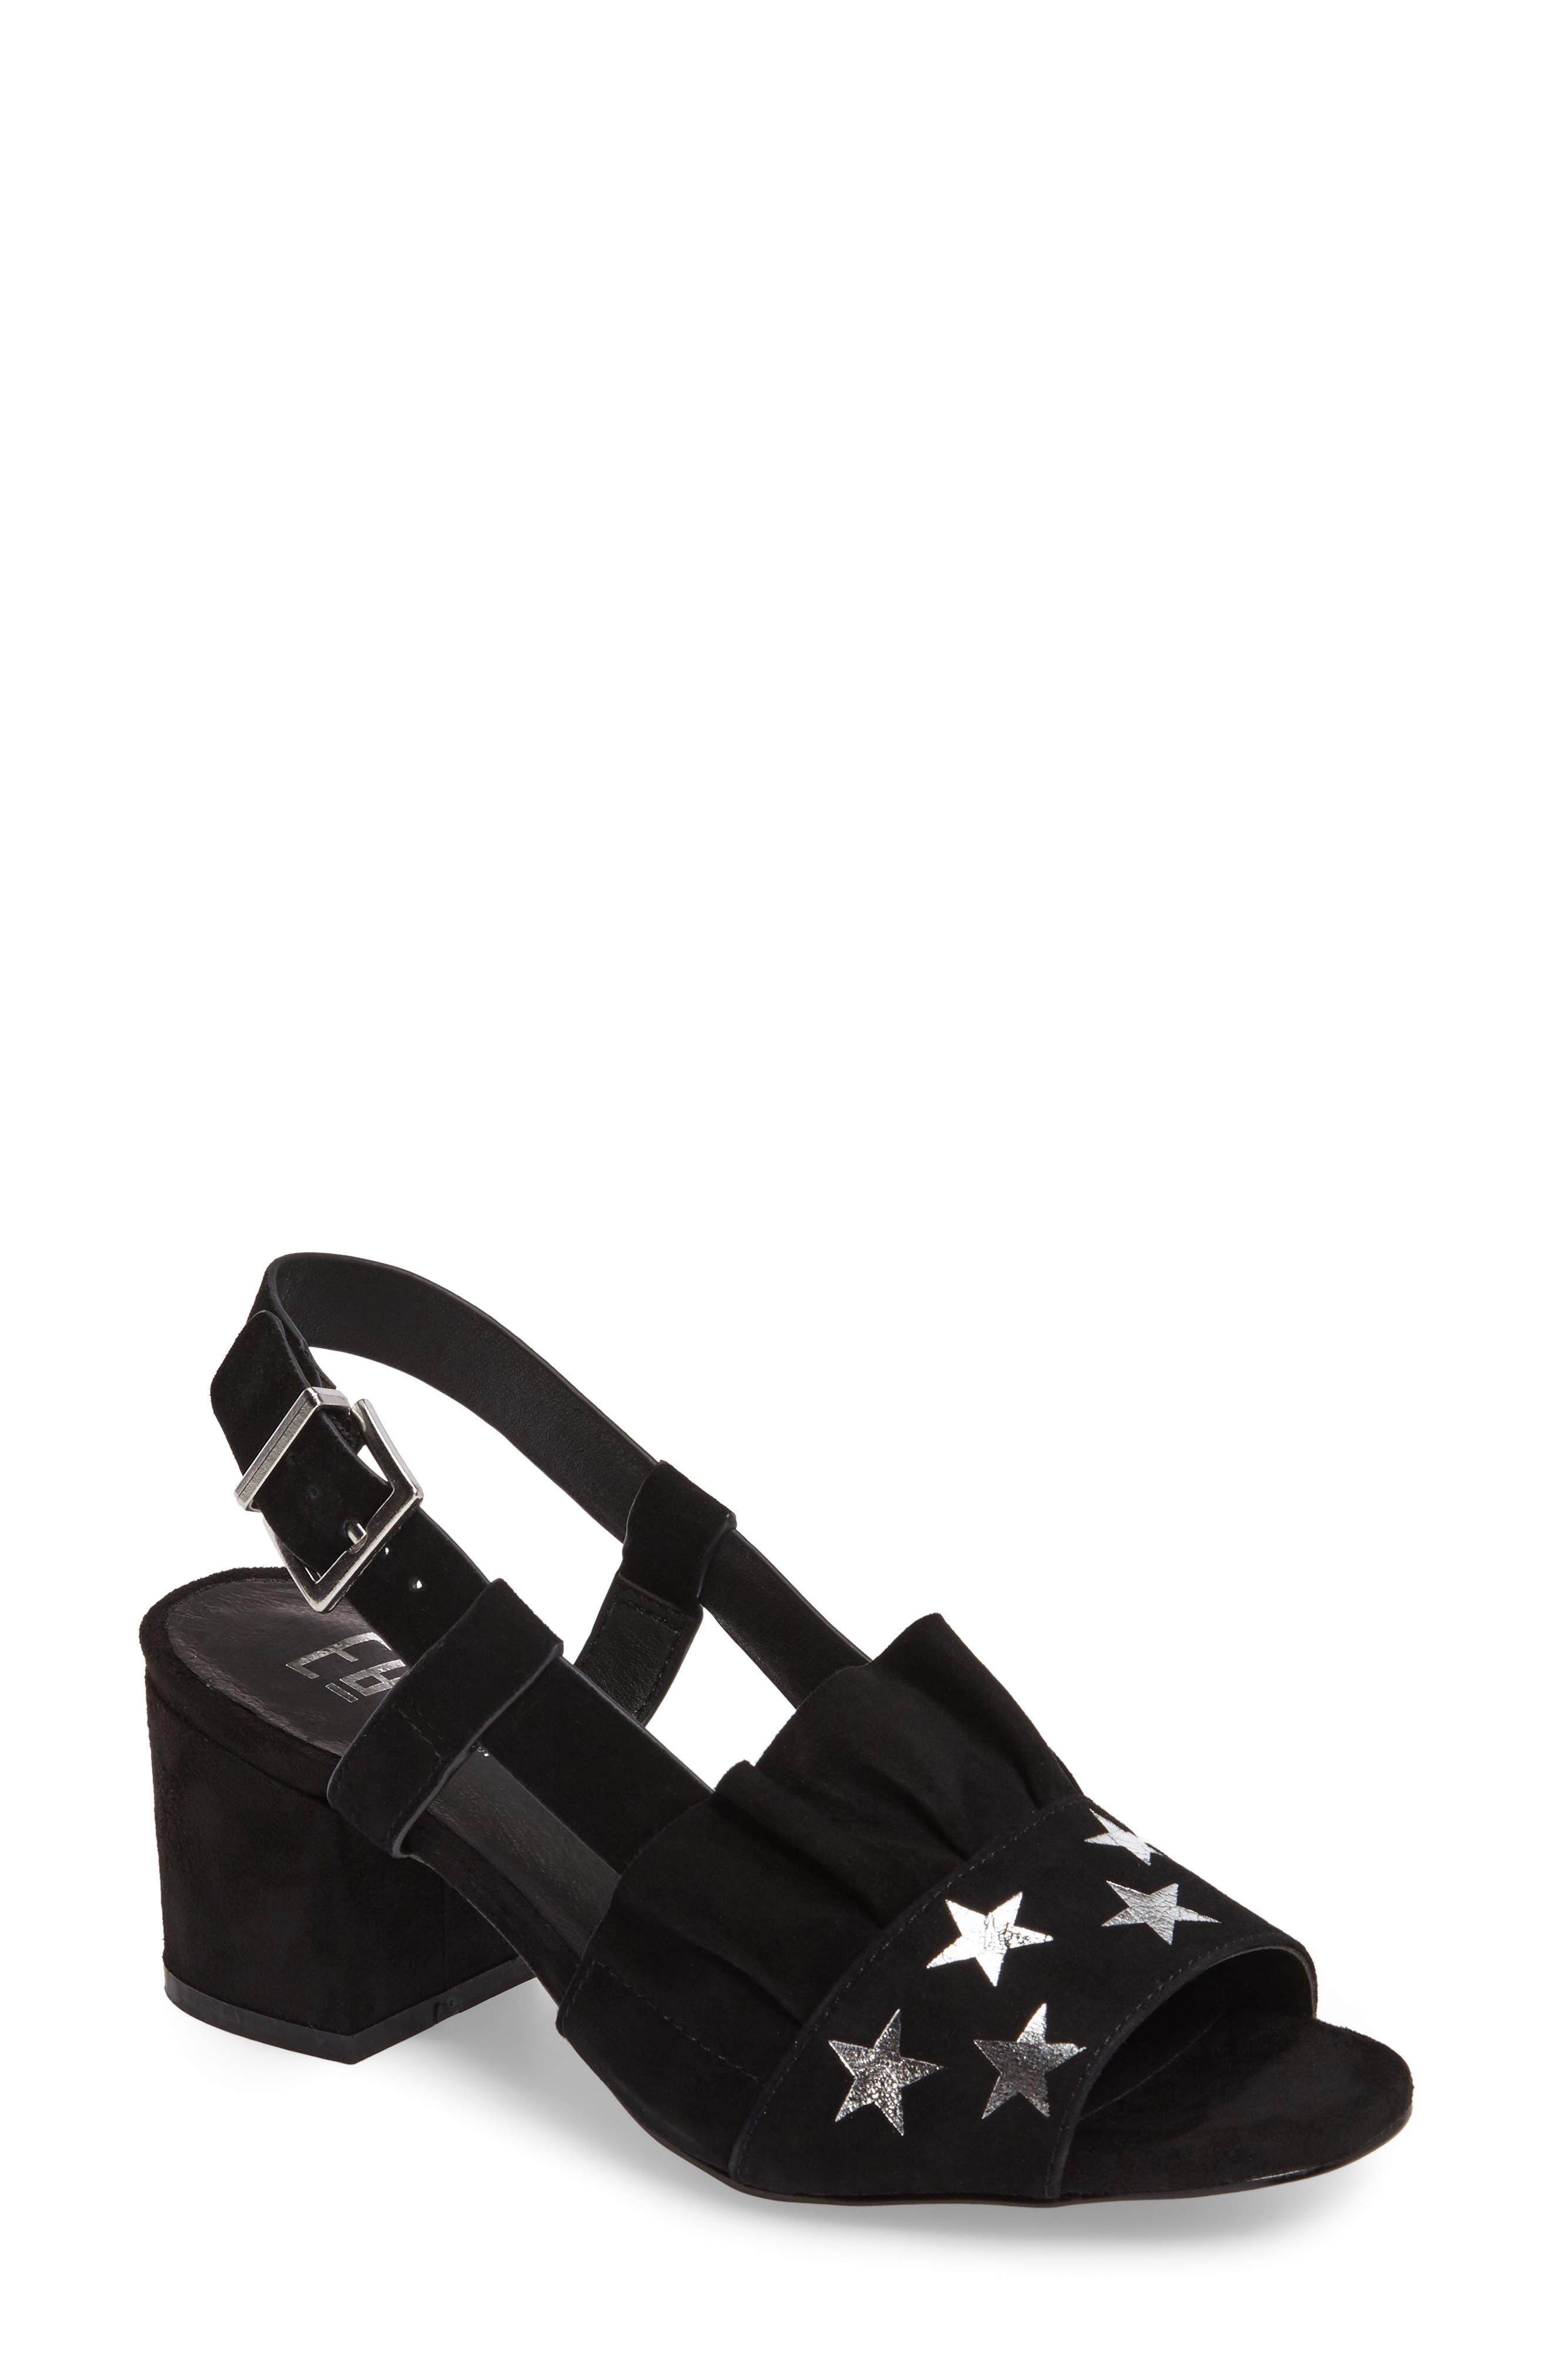 E8 by Miista Romeo Ruffled Star Sandal (Women)